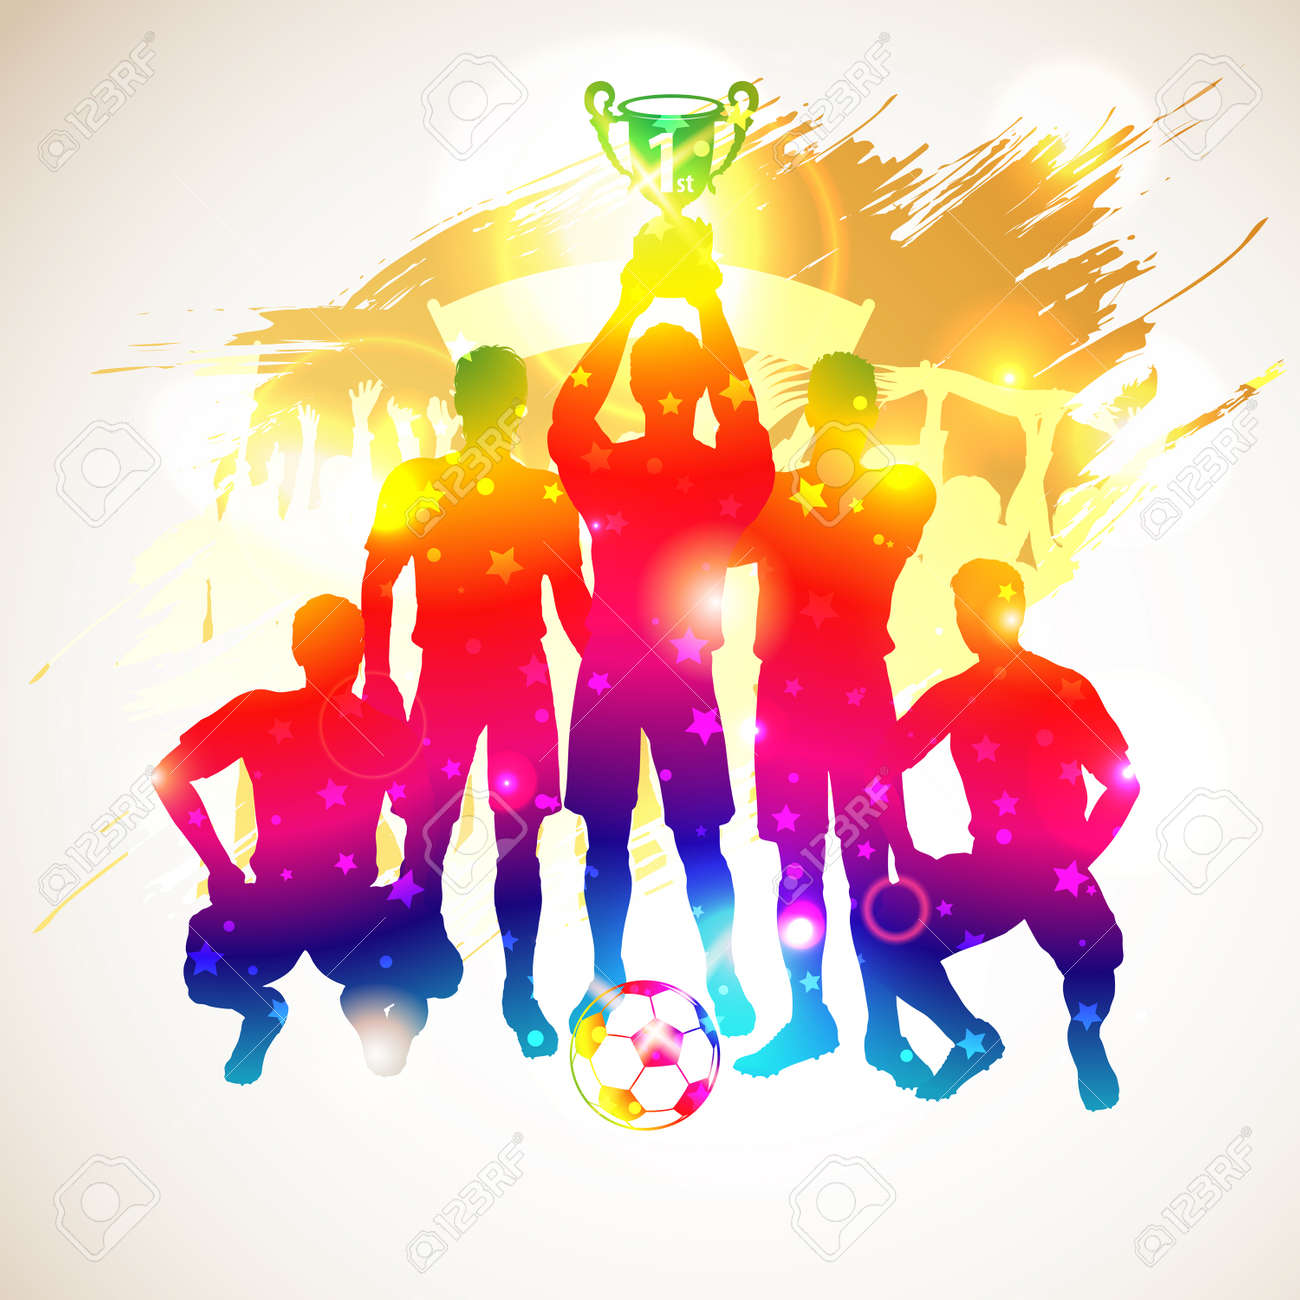 sports fan clipart. sports fan: bright rainbow silhouettes soccer players with cup and fans on grunge background, fan clipart